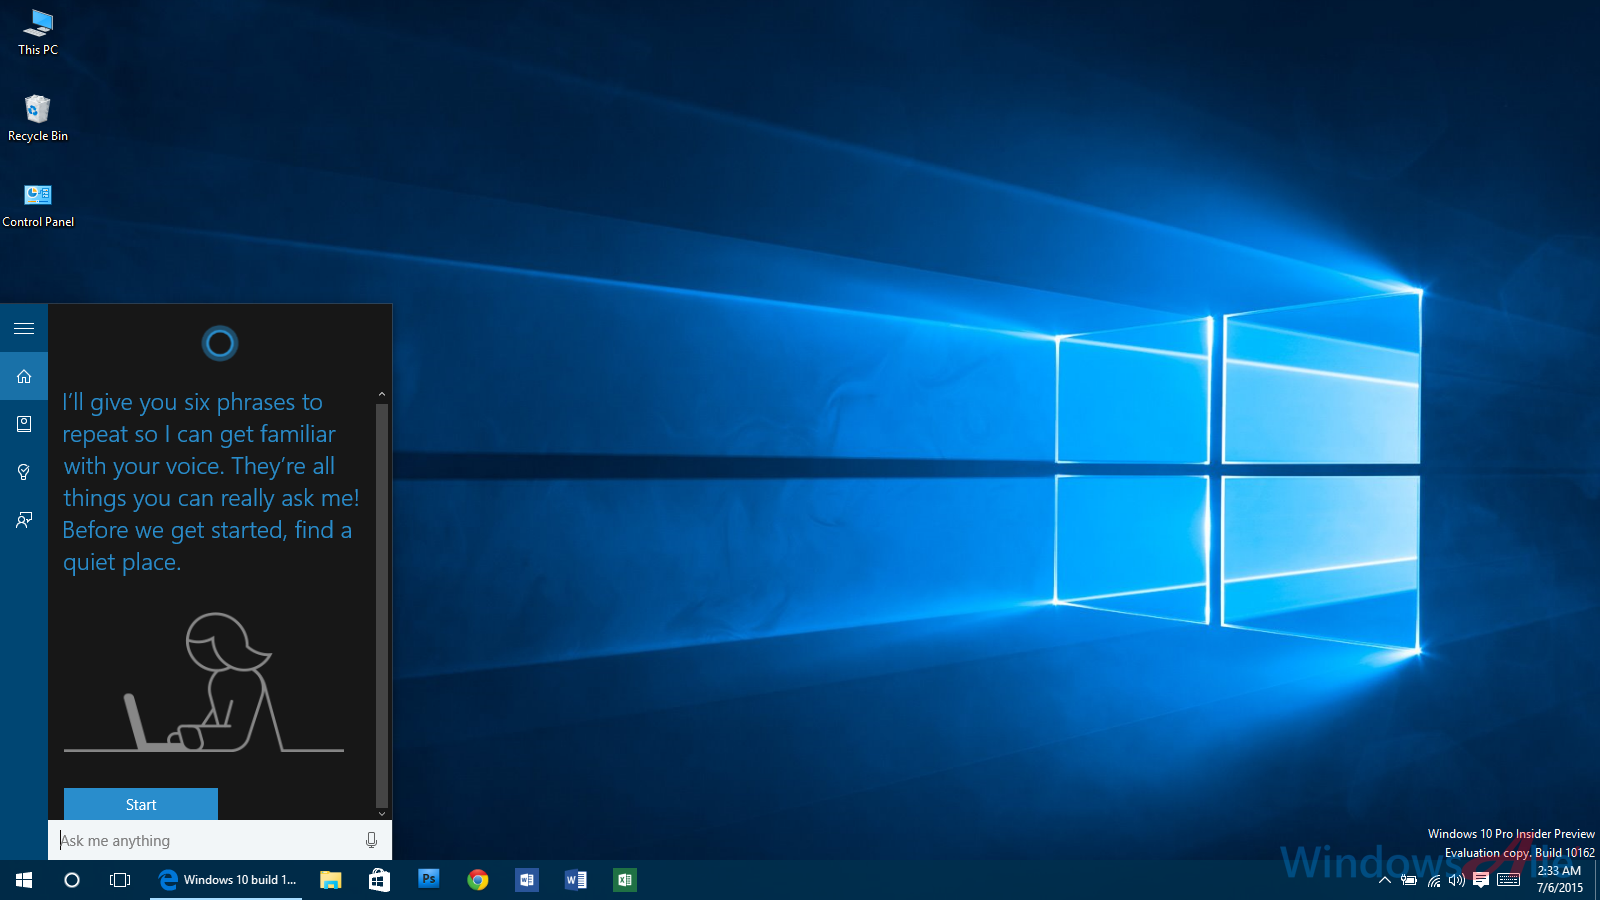 Windows 10 How To Fix Windows Could Not Configure One Or More System Components Error Upgrade Easily Windows 10 Windows 10 Things